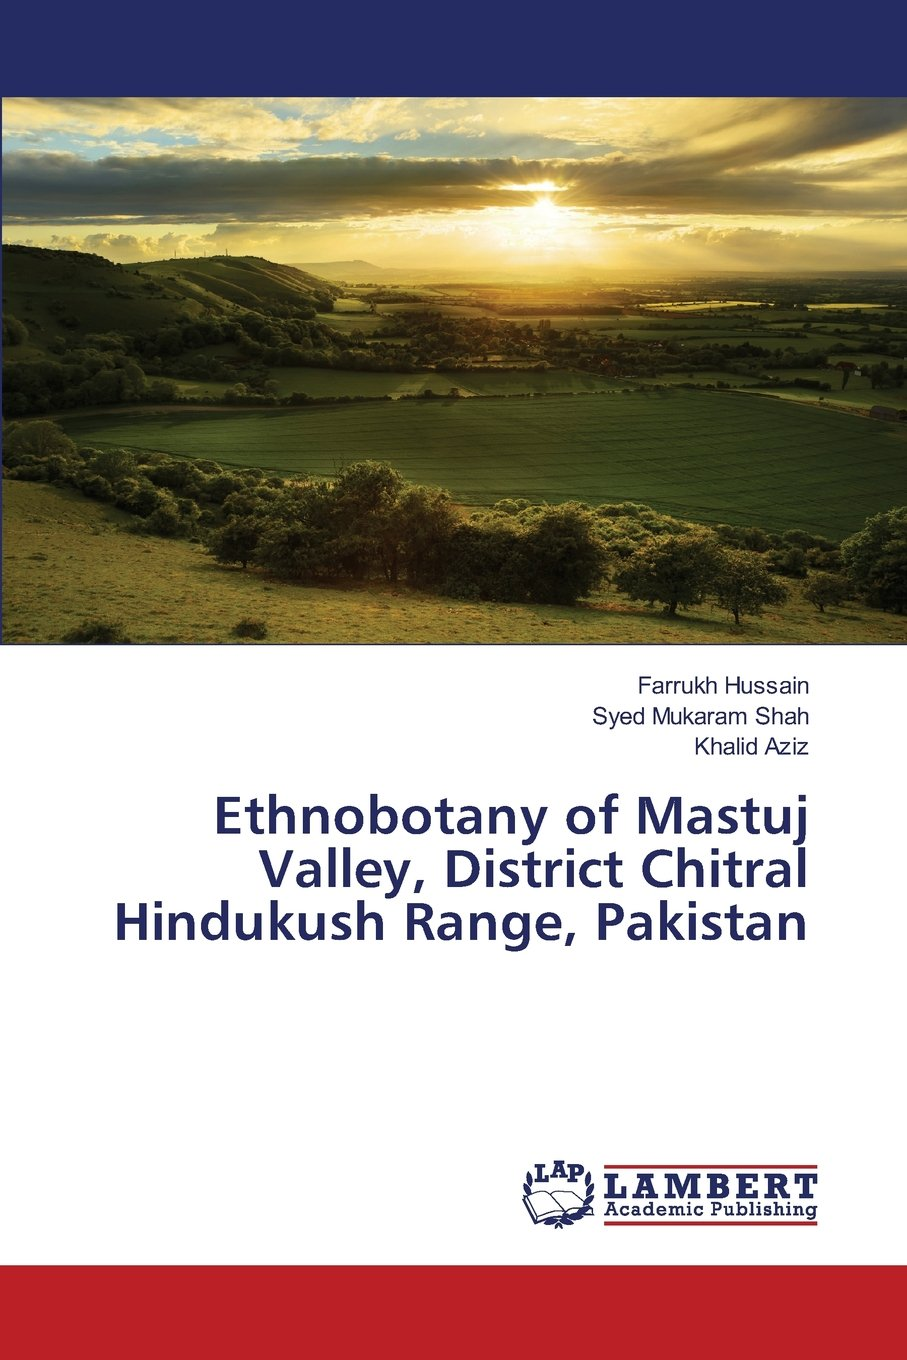 Ethnobotany of Mastuj Valley, District Chitral Hindukush Range, Pakistan